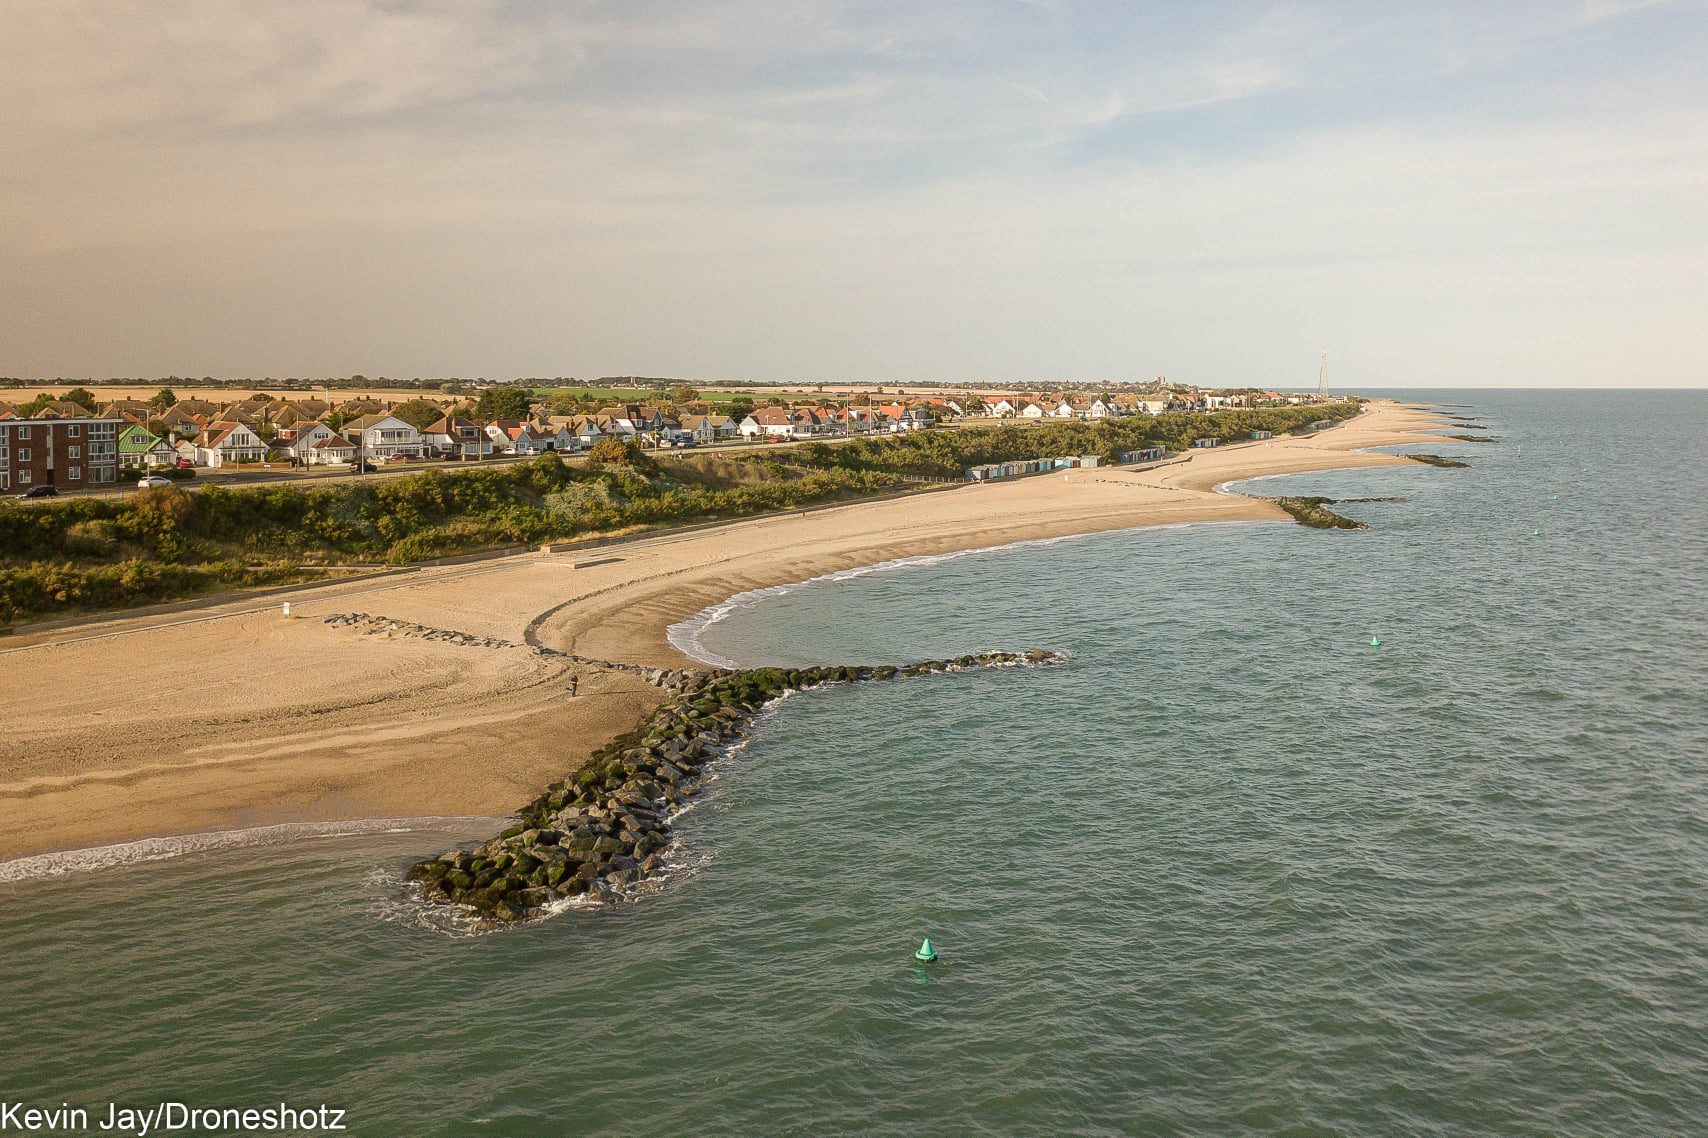 Arial View of Coastline - Holland on Sea